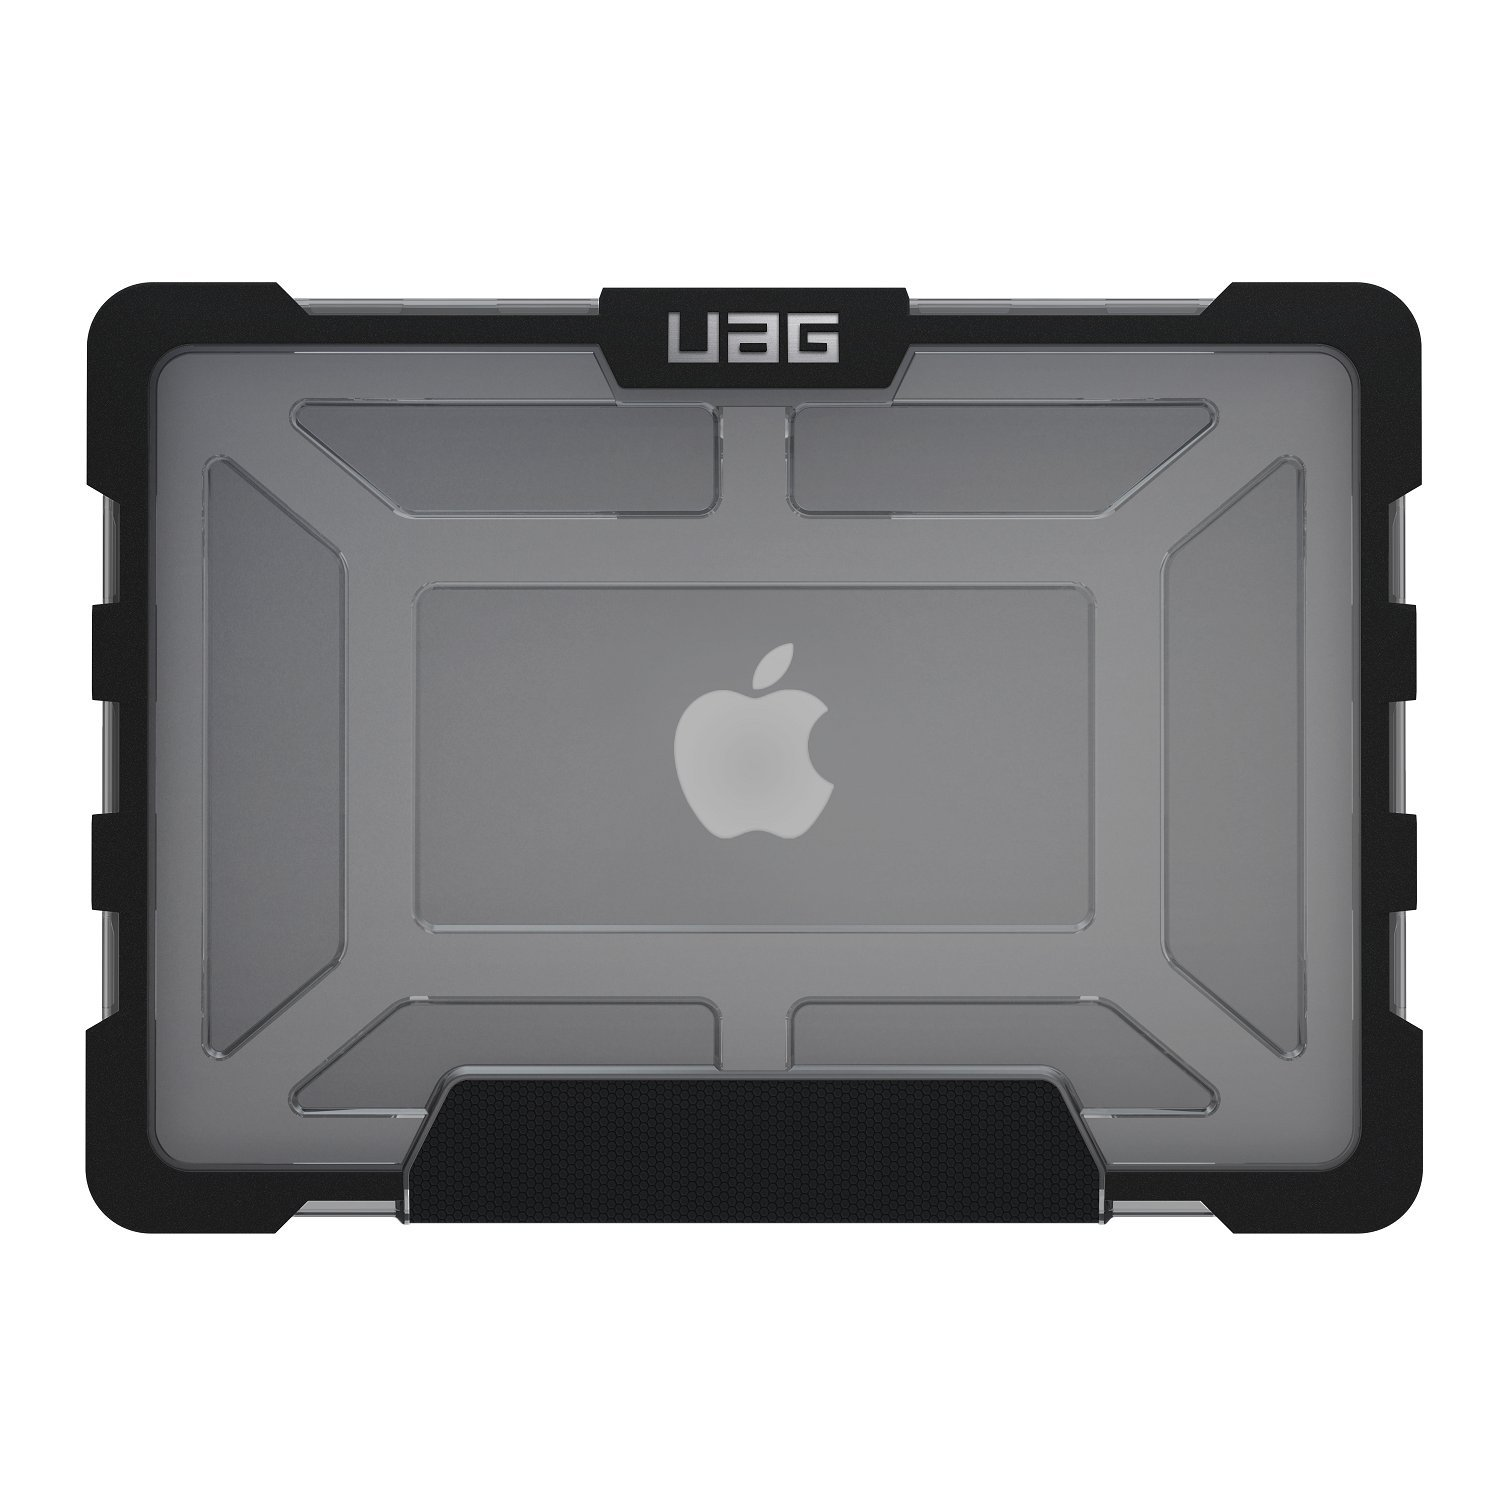 UAG MacBook Pro 13-inch with Retina Display (3rd Gen) Feather-Light Rugged [ASH] Military Drop Tested Laptop Case by URBAN ARMOR GEAR (Image #7)